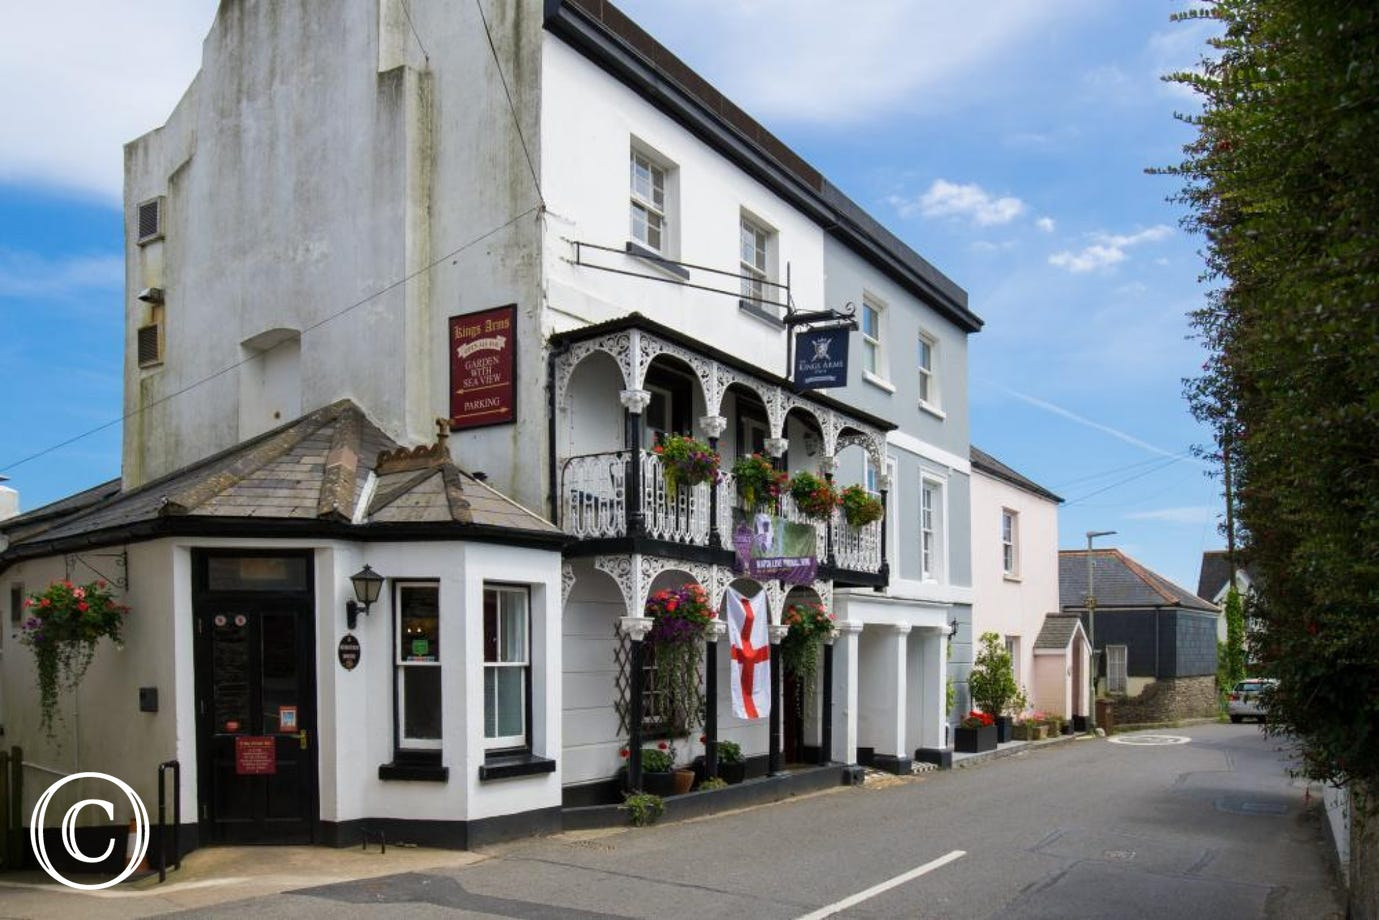 The Kings Arms in Strete